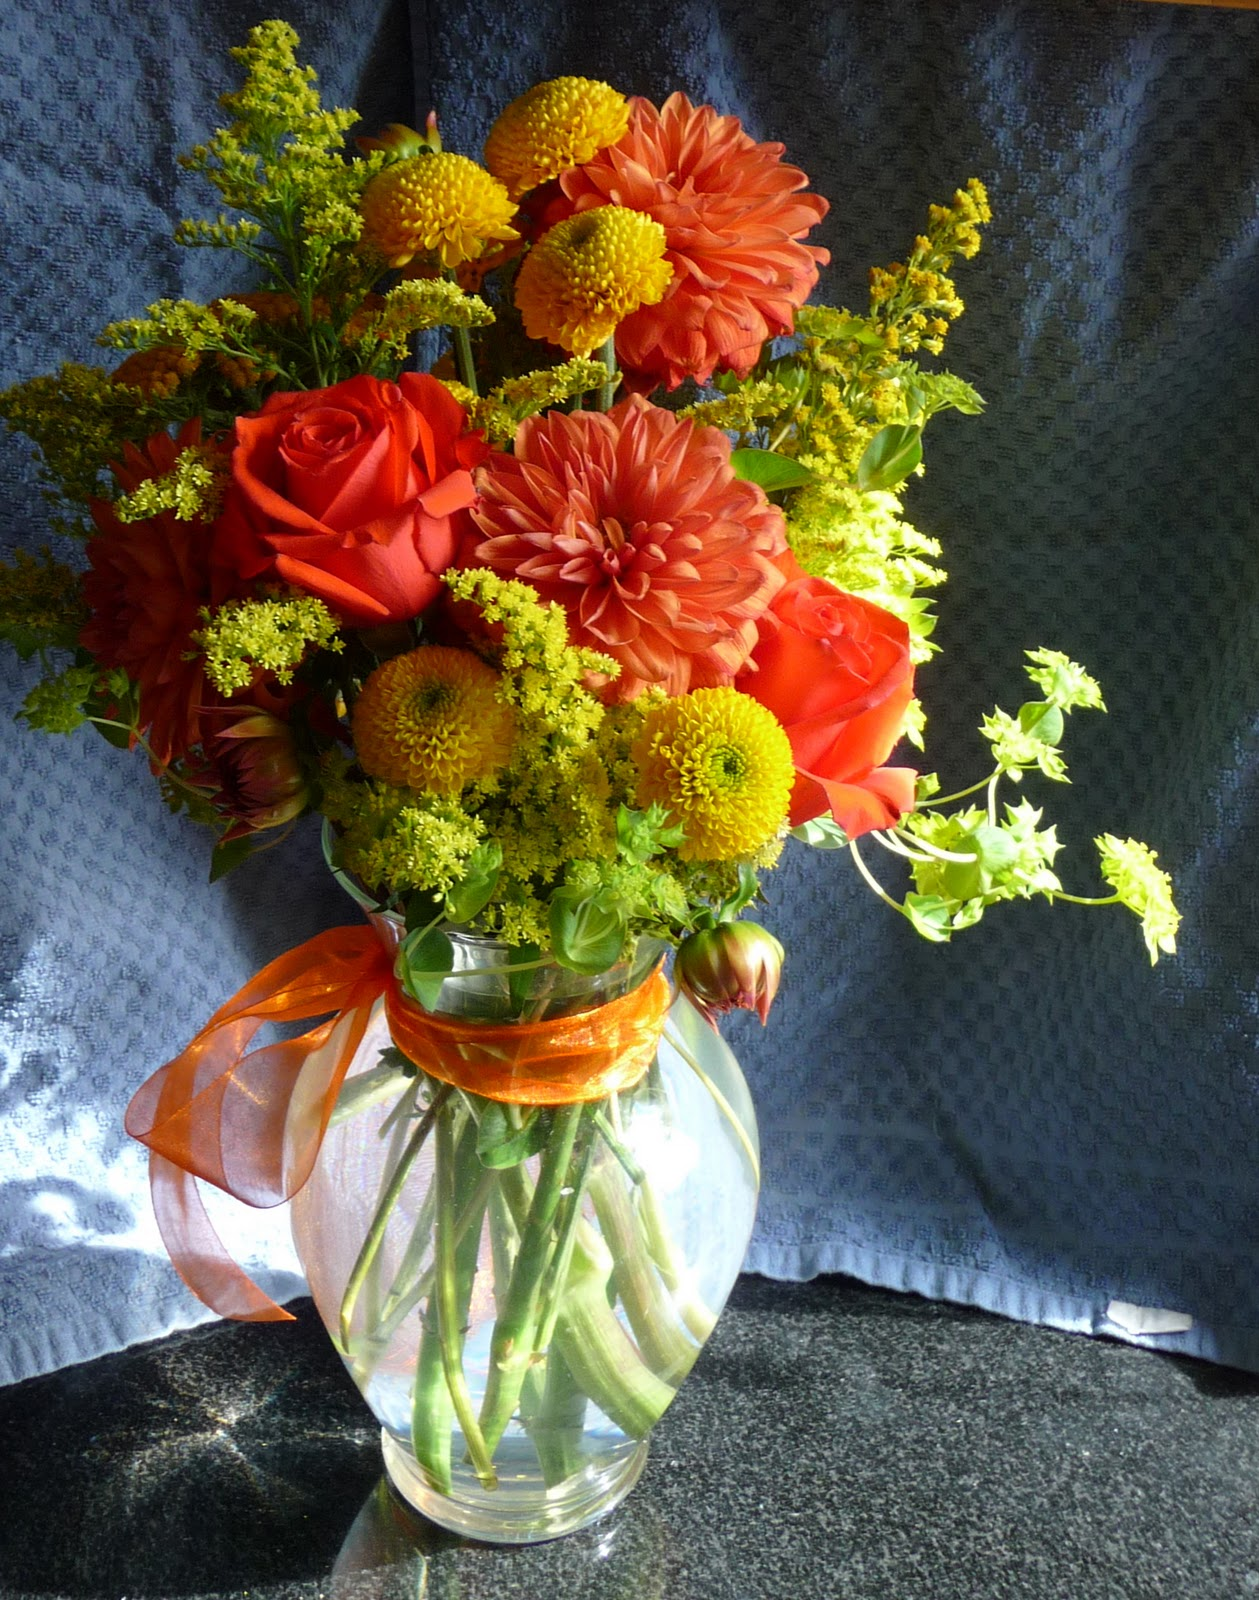 Pictures Of Flowers In Vases - Beautiful Flowers